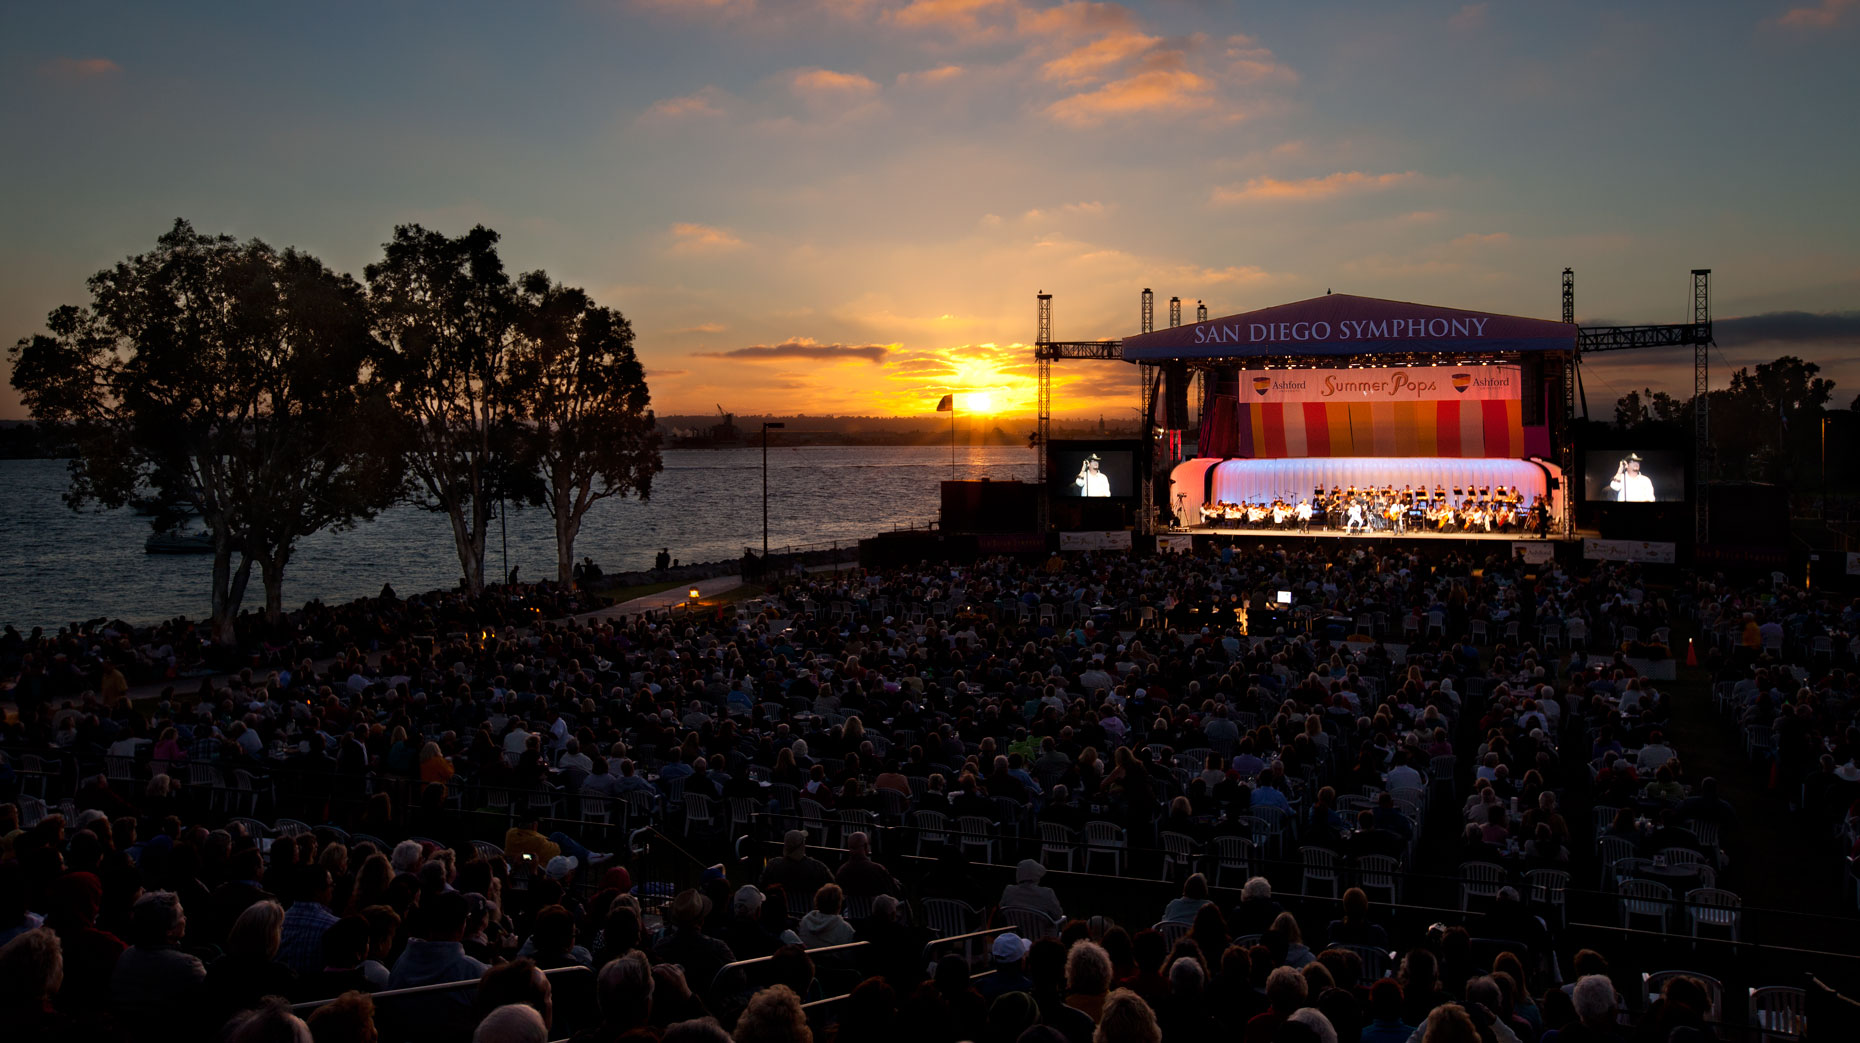 Advertising Photographer San Diego Symphony Summer Pops Concert Sunset